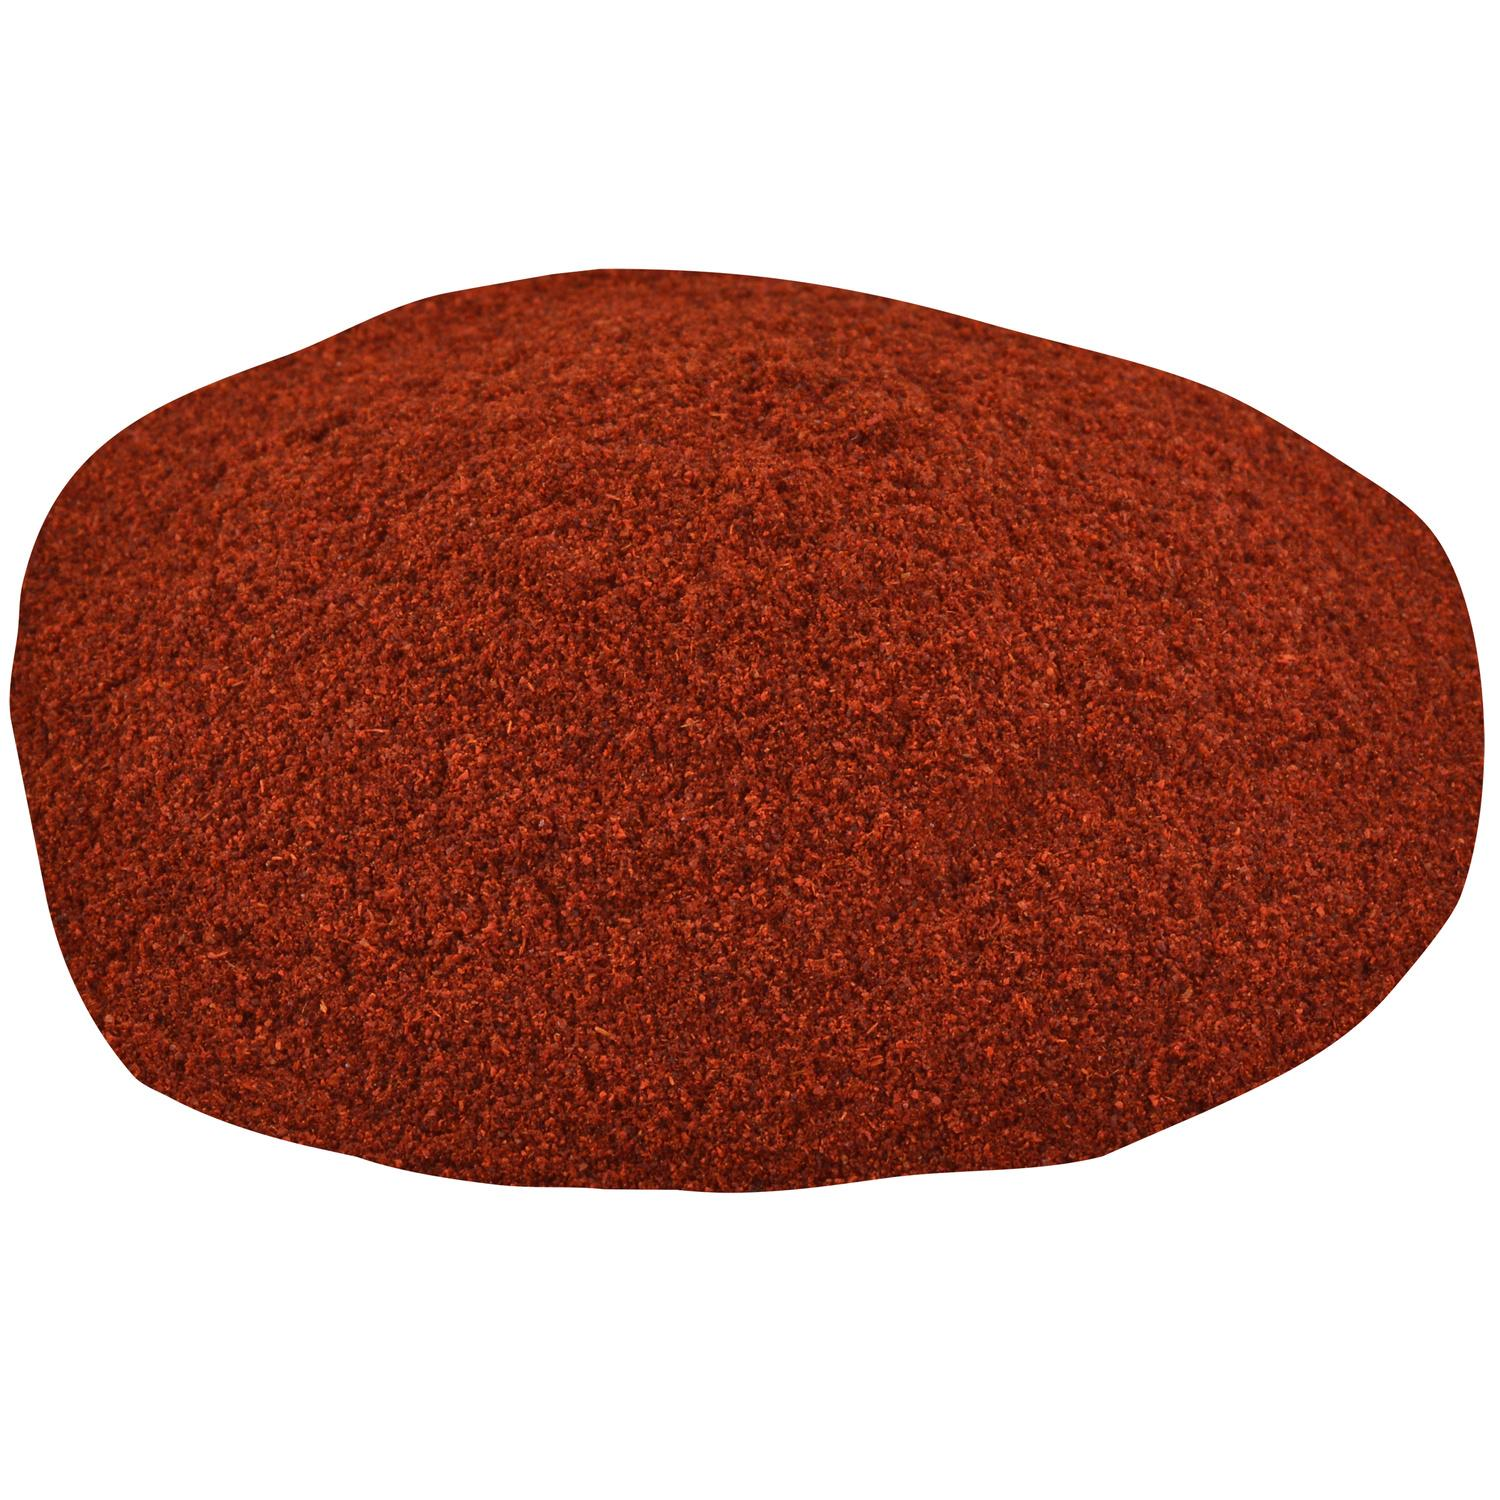 image of Sysco Imperial Mccormick Smoked Paprika